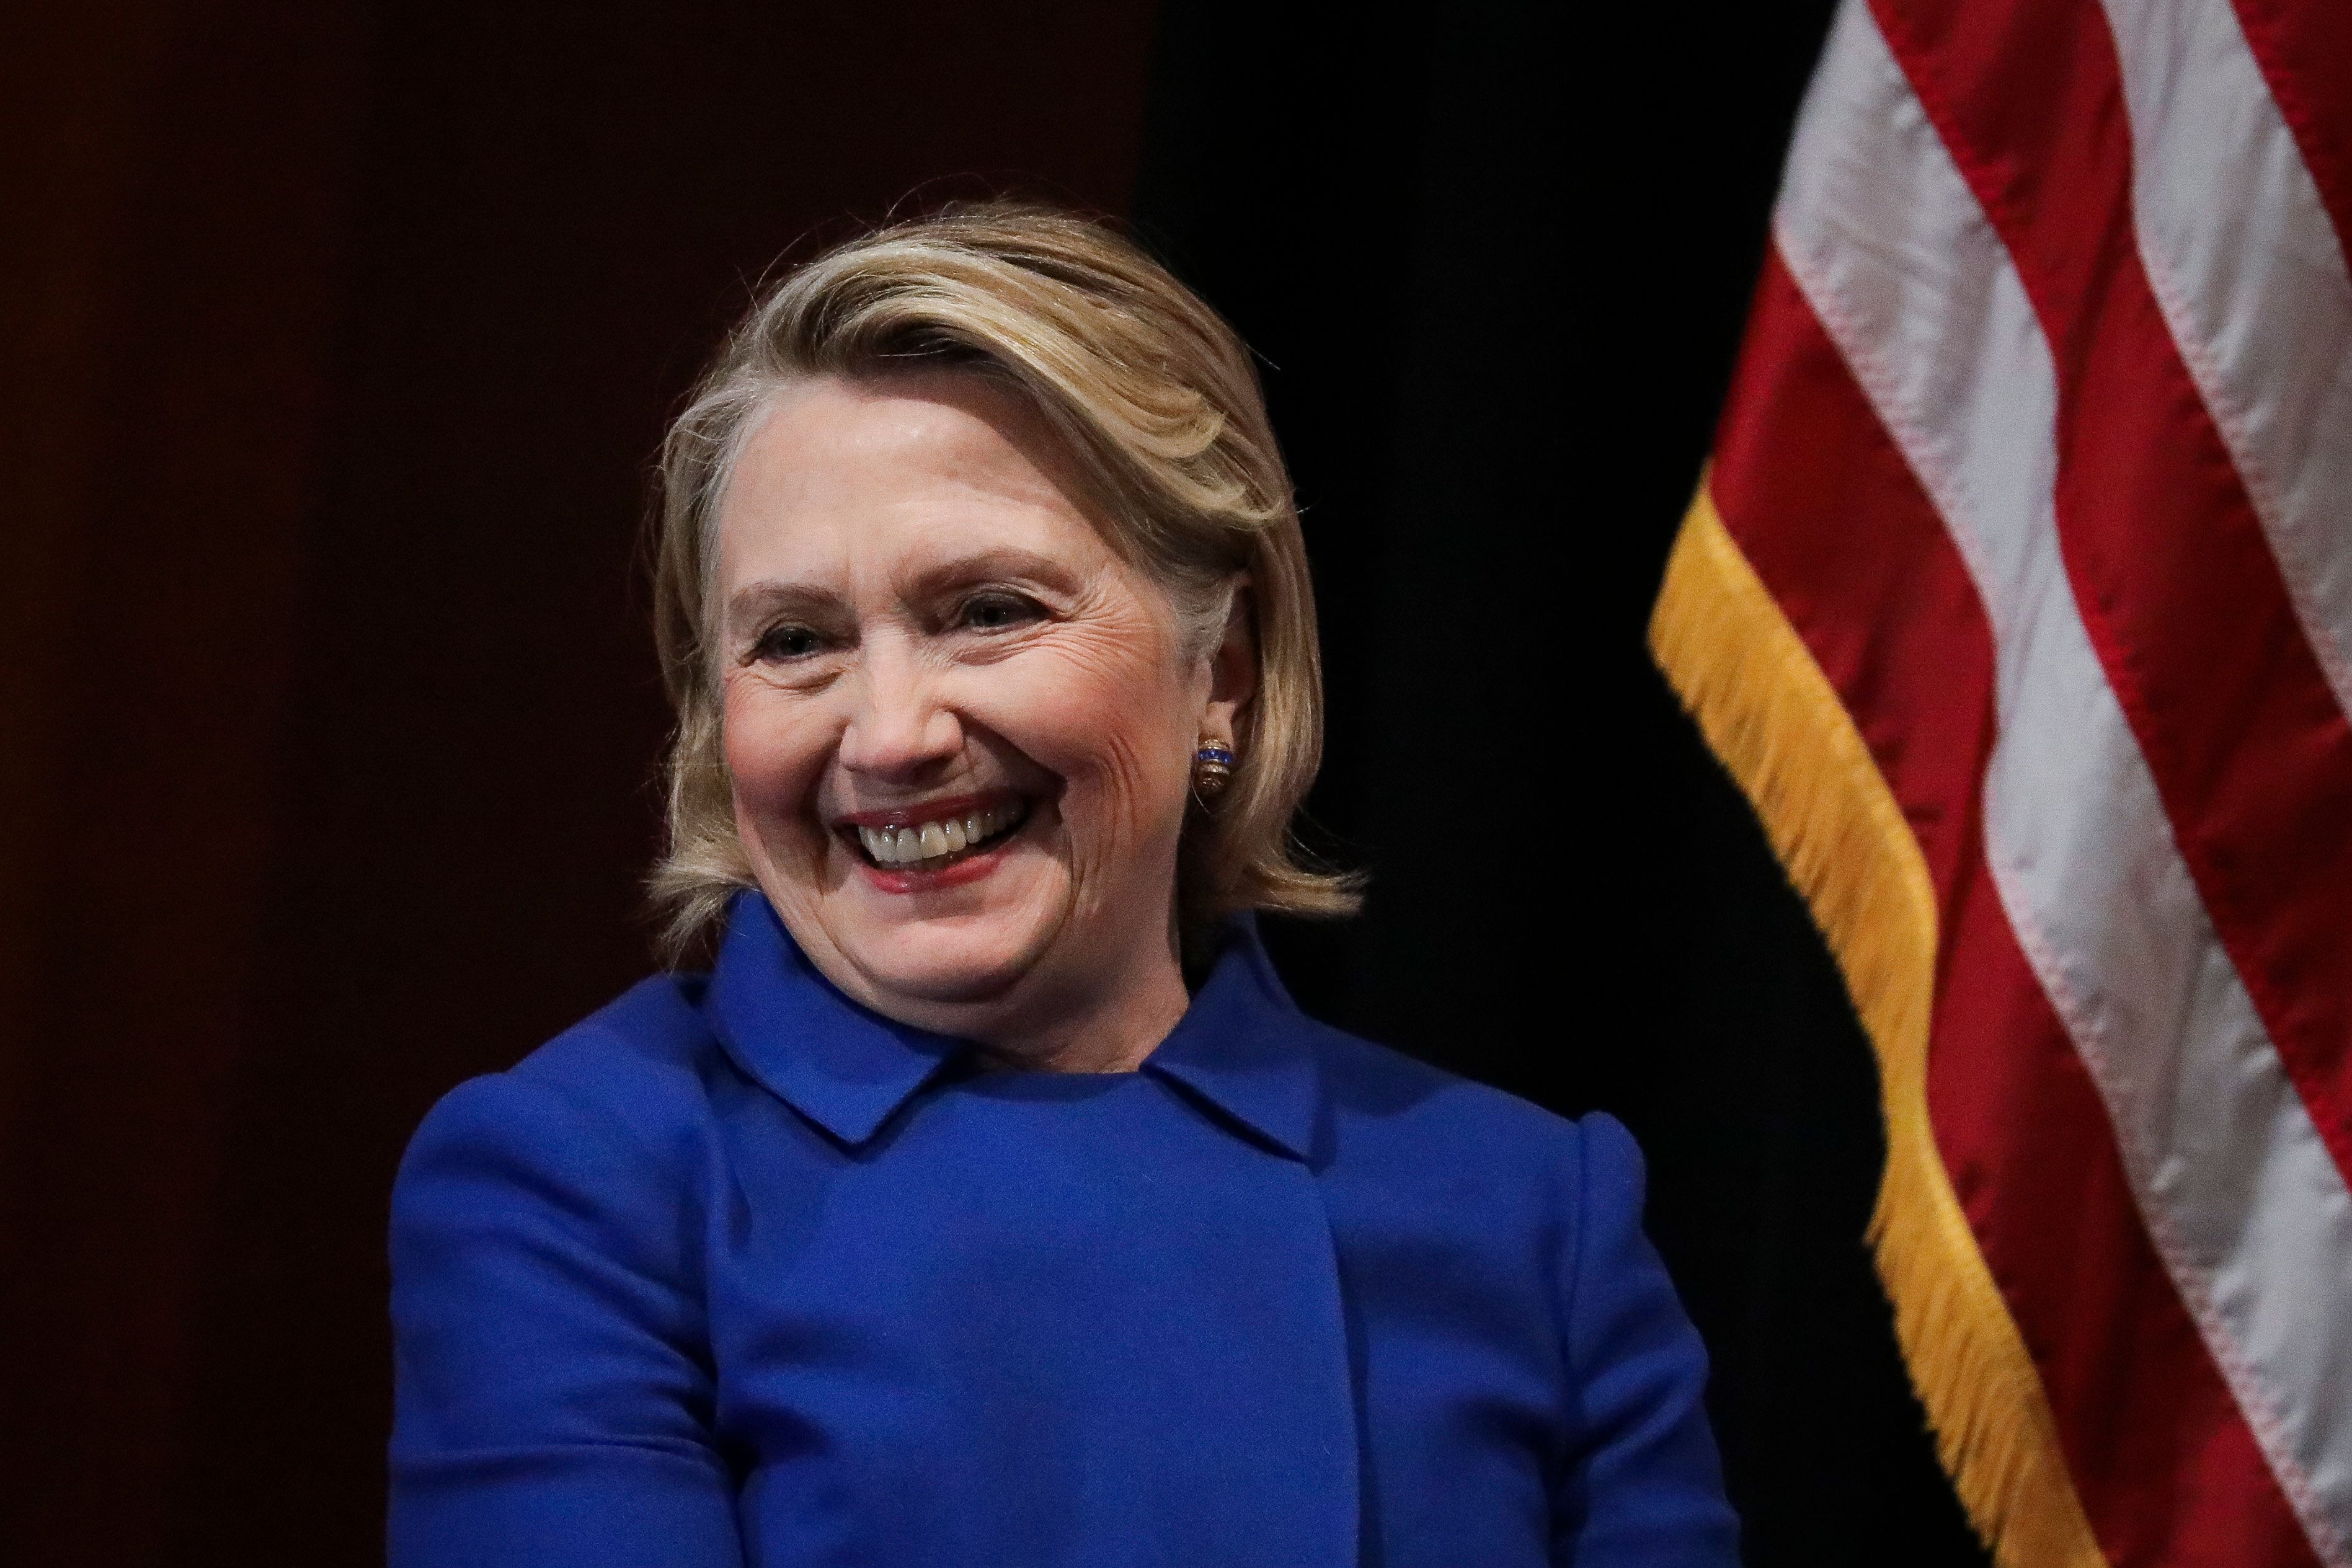 NEW YORK, NY - JANUARY 7: Former Secretary of State Hillary Clinton looks on during an event to discuss reproductive rights at Barnard College, January 7, 2019 in New York City. The two Democrats shared the stage to promote the Reproductive Health Act in New York, which Cuomo wants the State Legislature to pass in their first 30 days. Under New York's current law, abortions after 24 weeks are illegal unless its necessary to save the woman's life. (Photo by Drew Angerer/Getty Images)